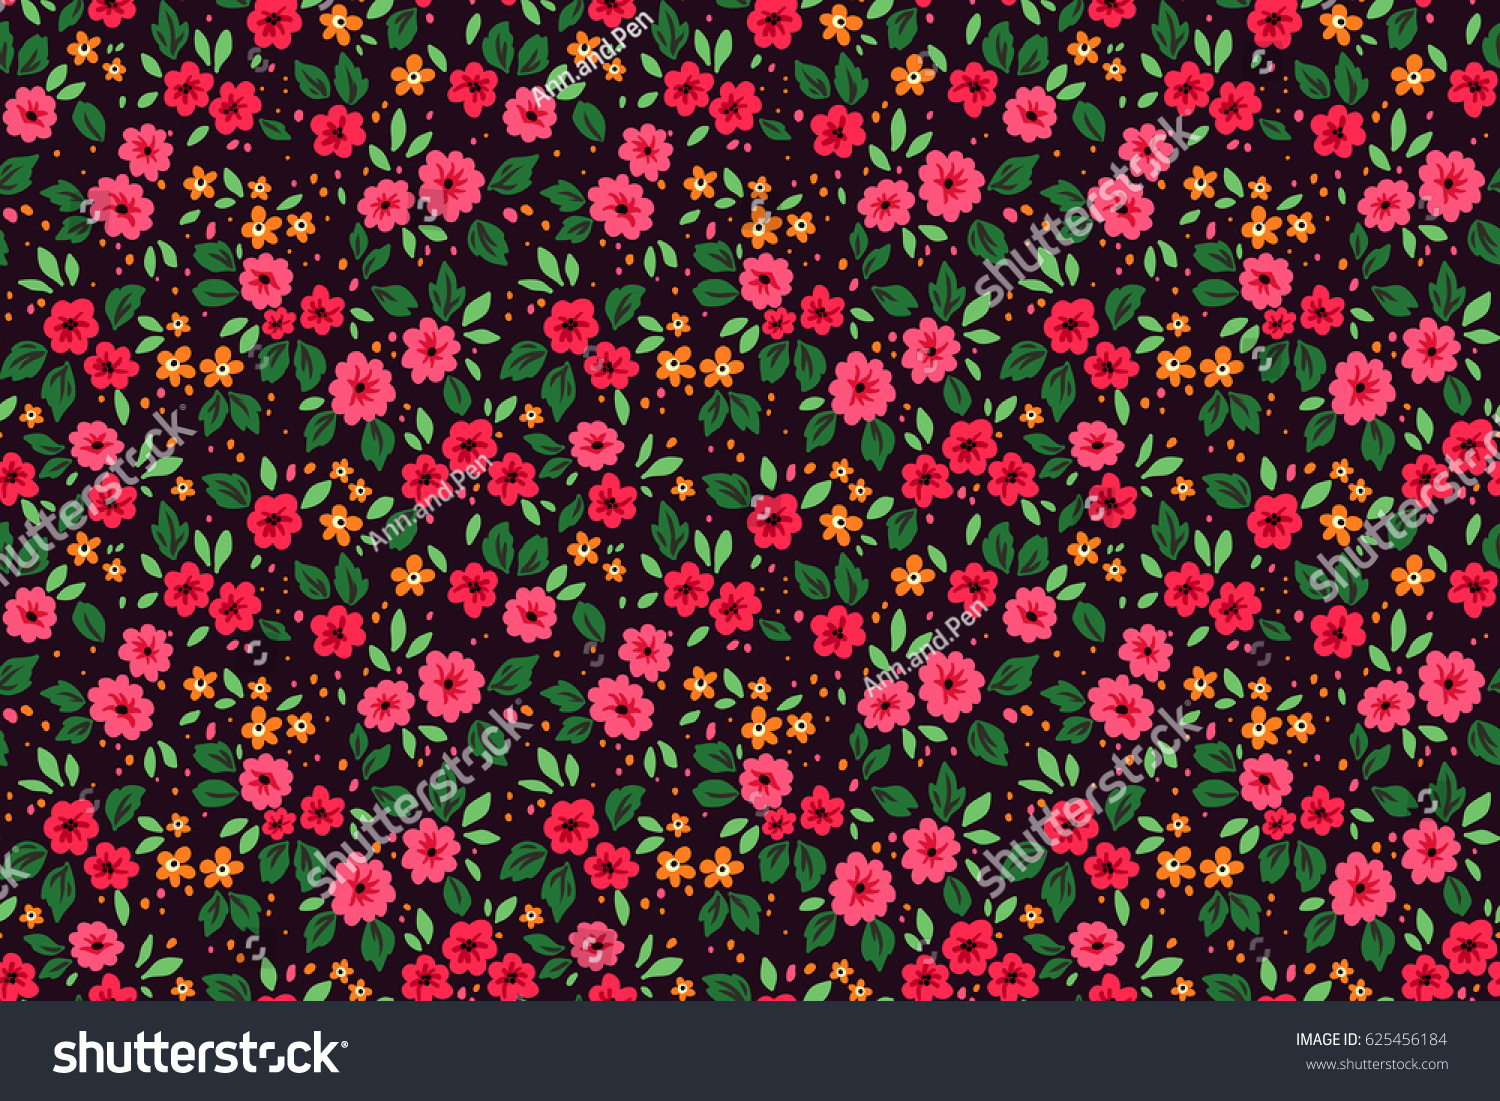 Floral pattern pretty flowers on dark stock vector royalty free floral pattern pretty flowers on dark violet background printing with small red flowers mightylinksfo